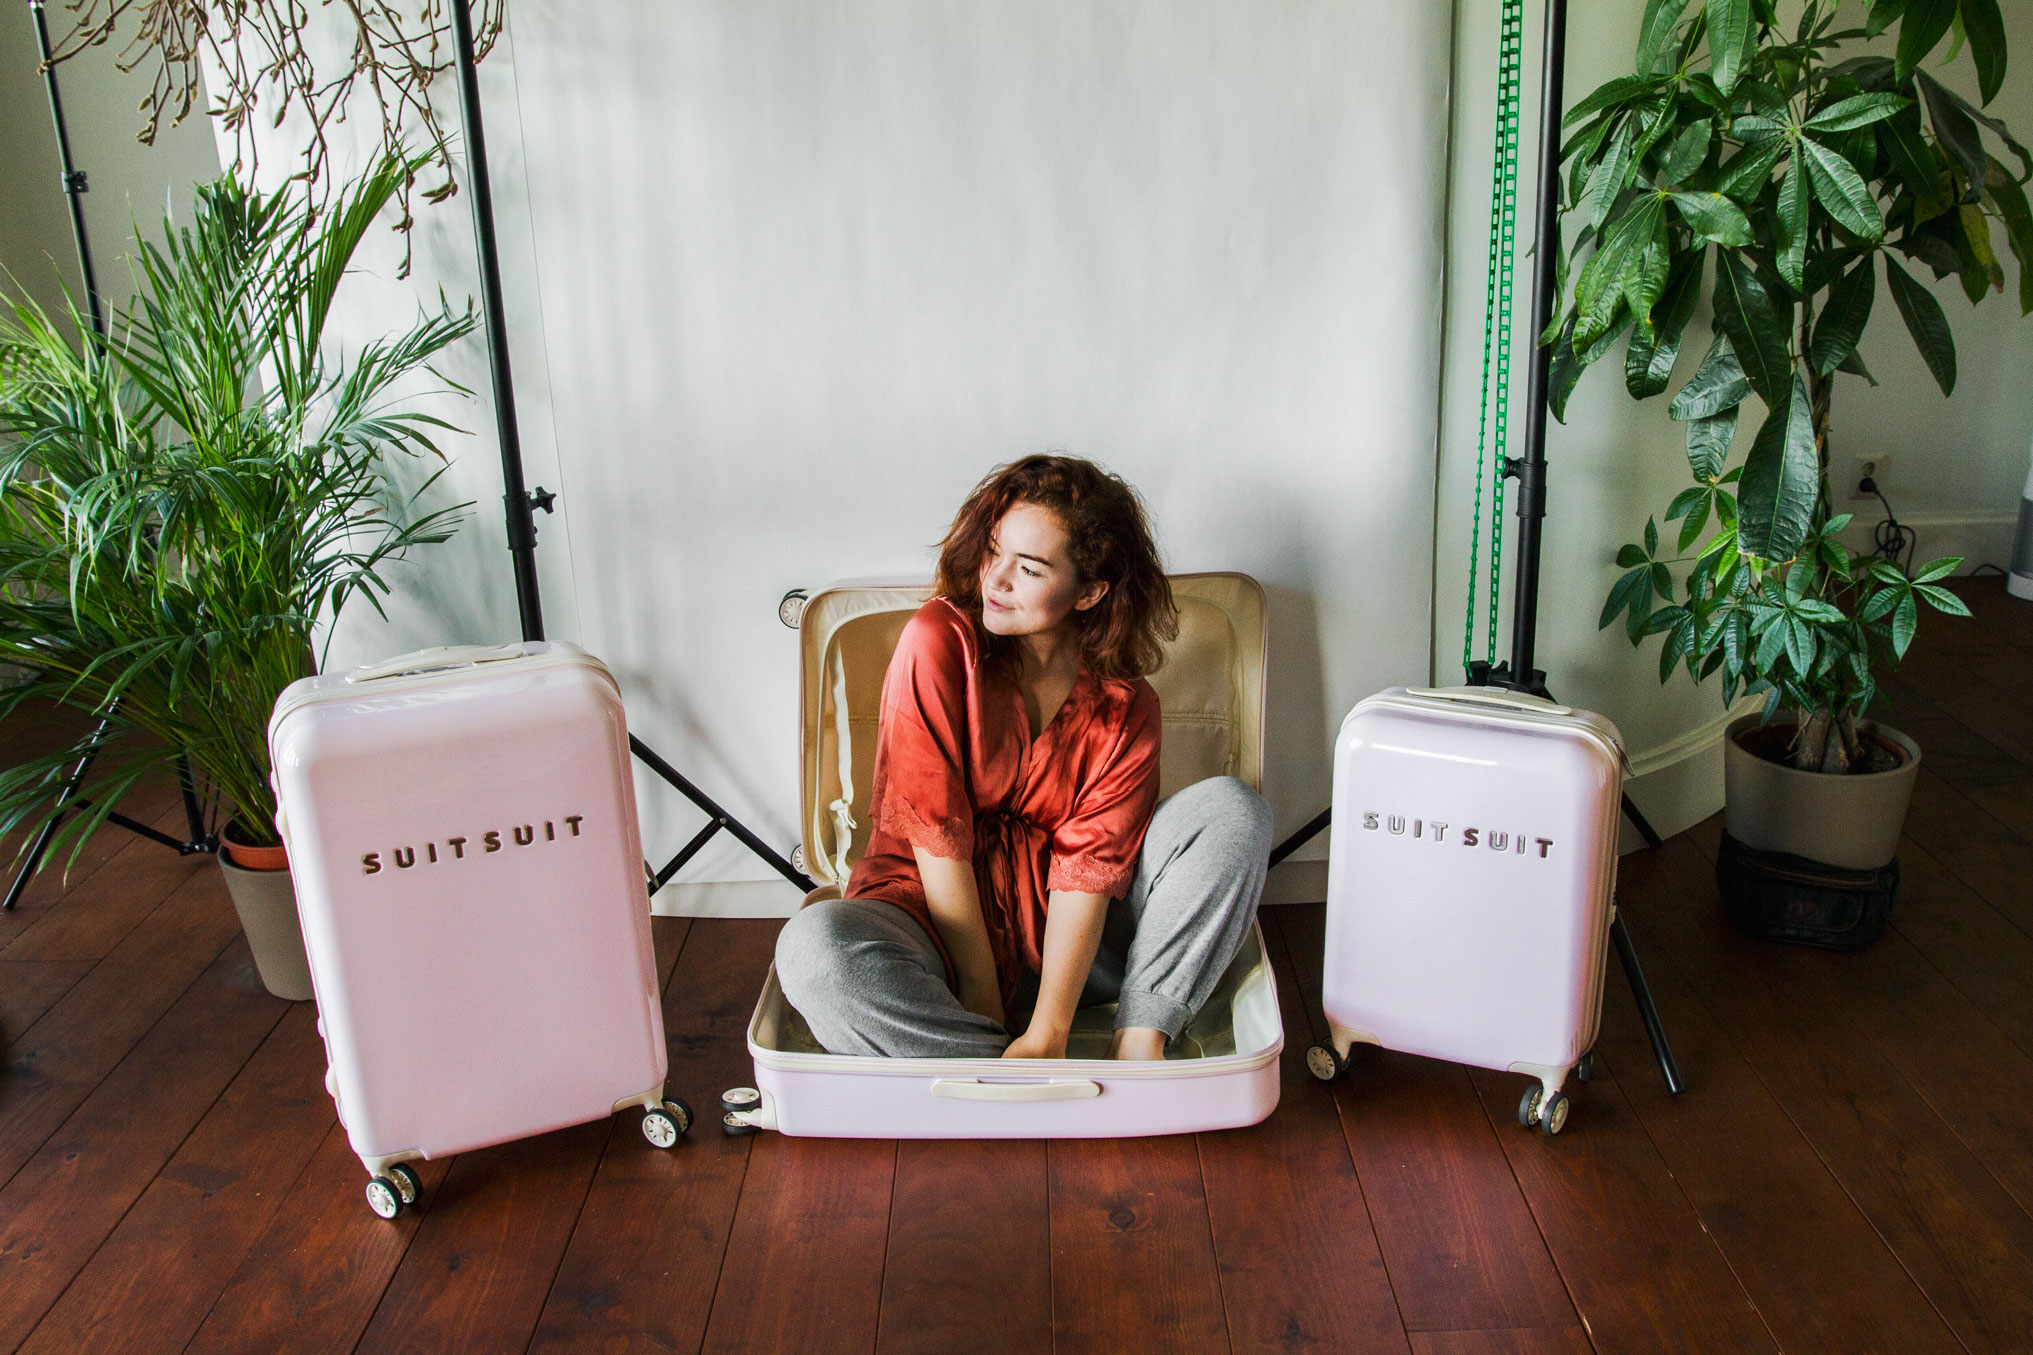 At home - yes, I fit in a suitcase, I'm that small, and this suitcase is  that  big. Amsterdam, Netherlands